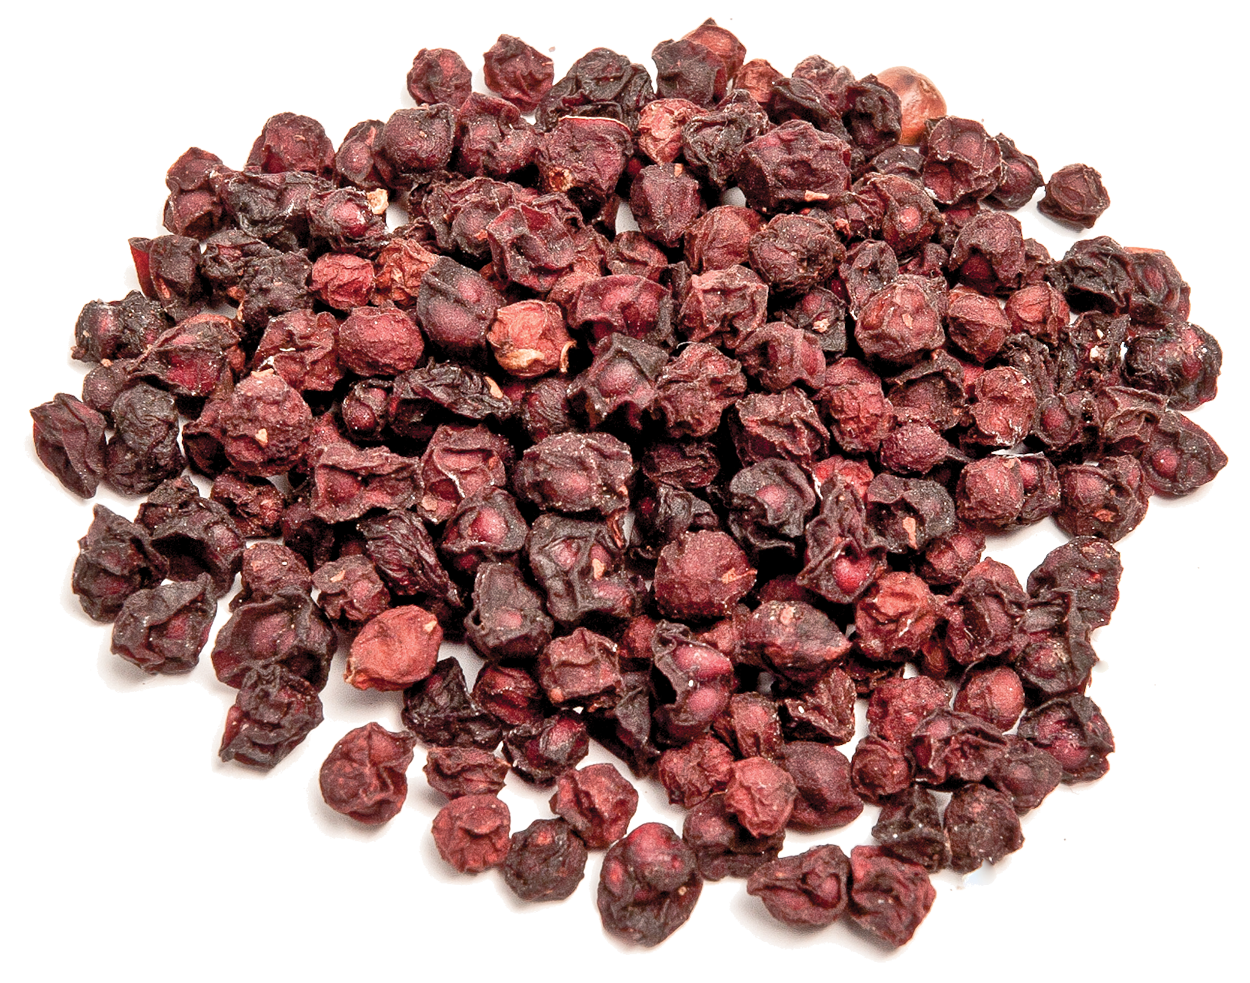 Dried Schizandra Berries